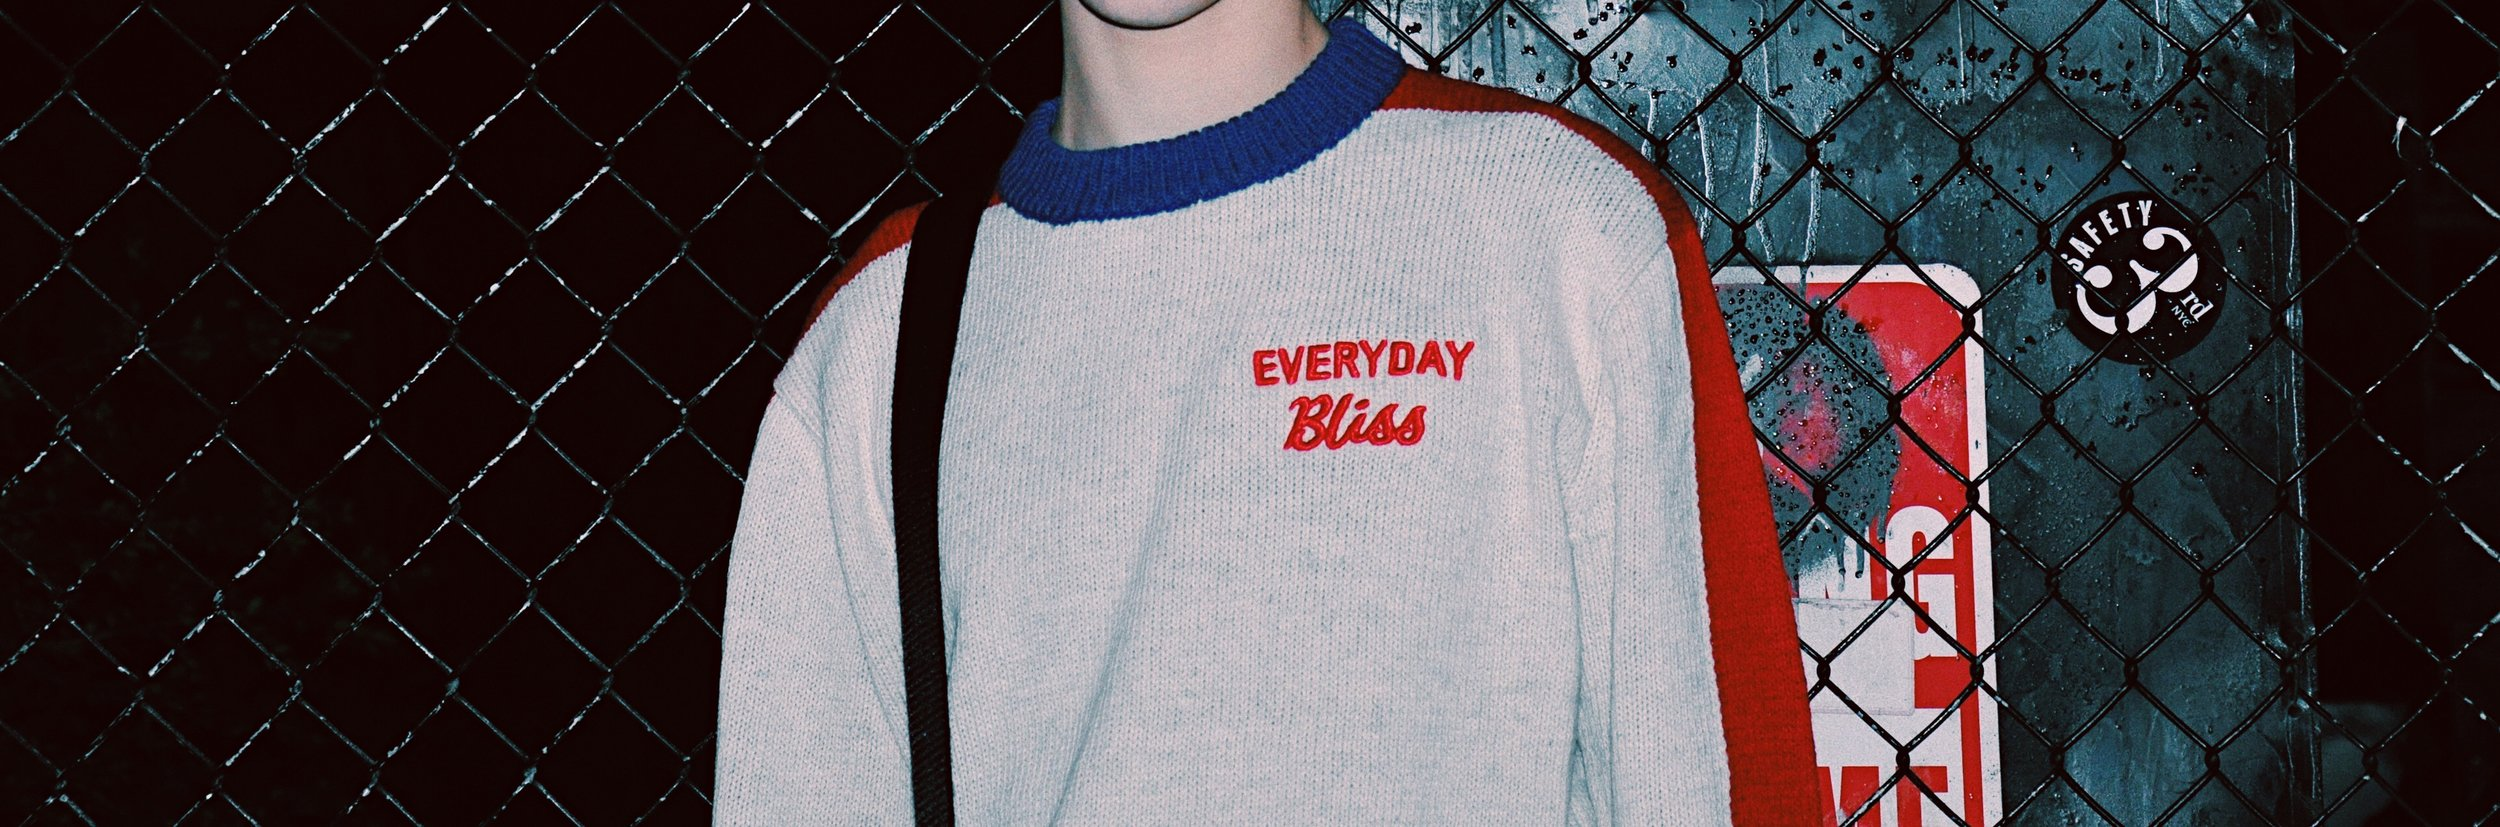 "Unif ""Everyday Bliss"" Sweater Details"